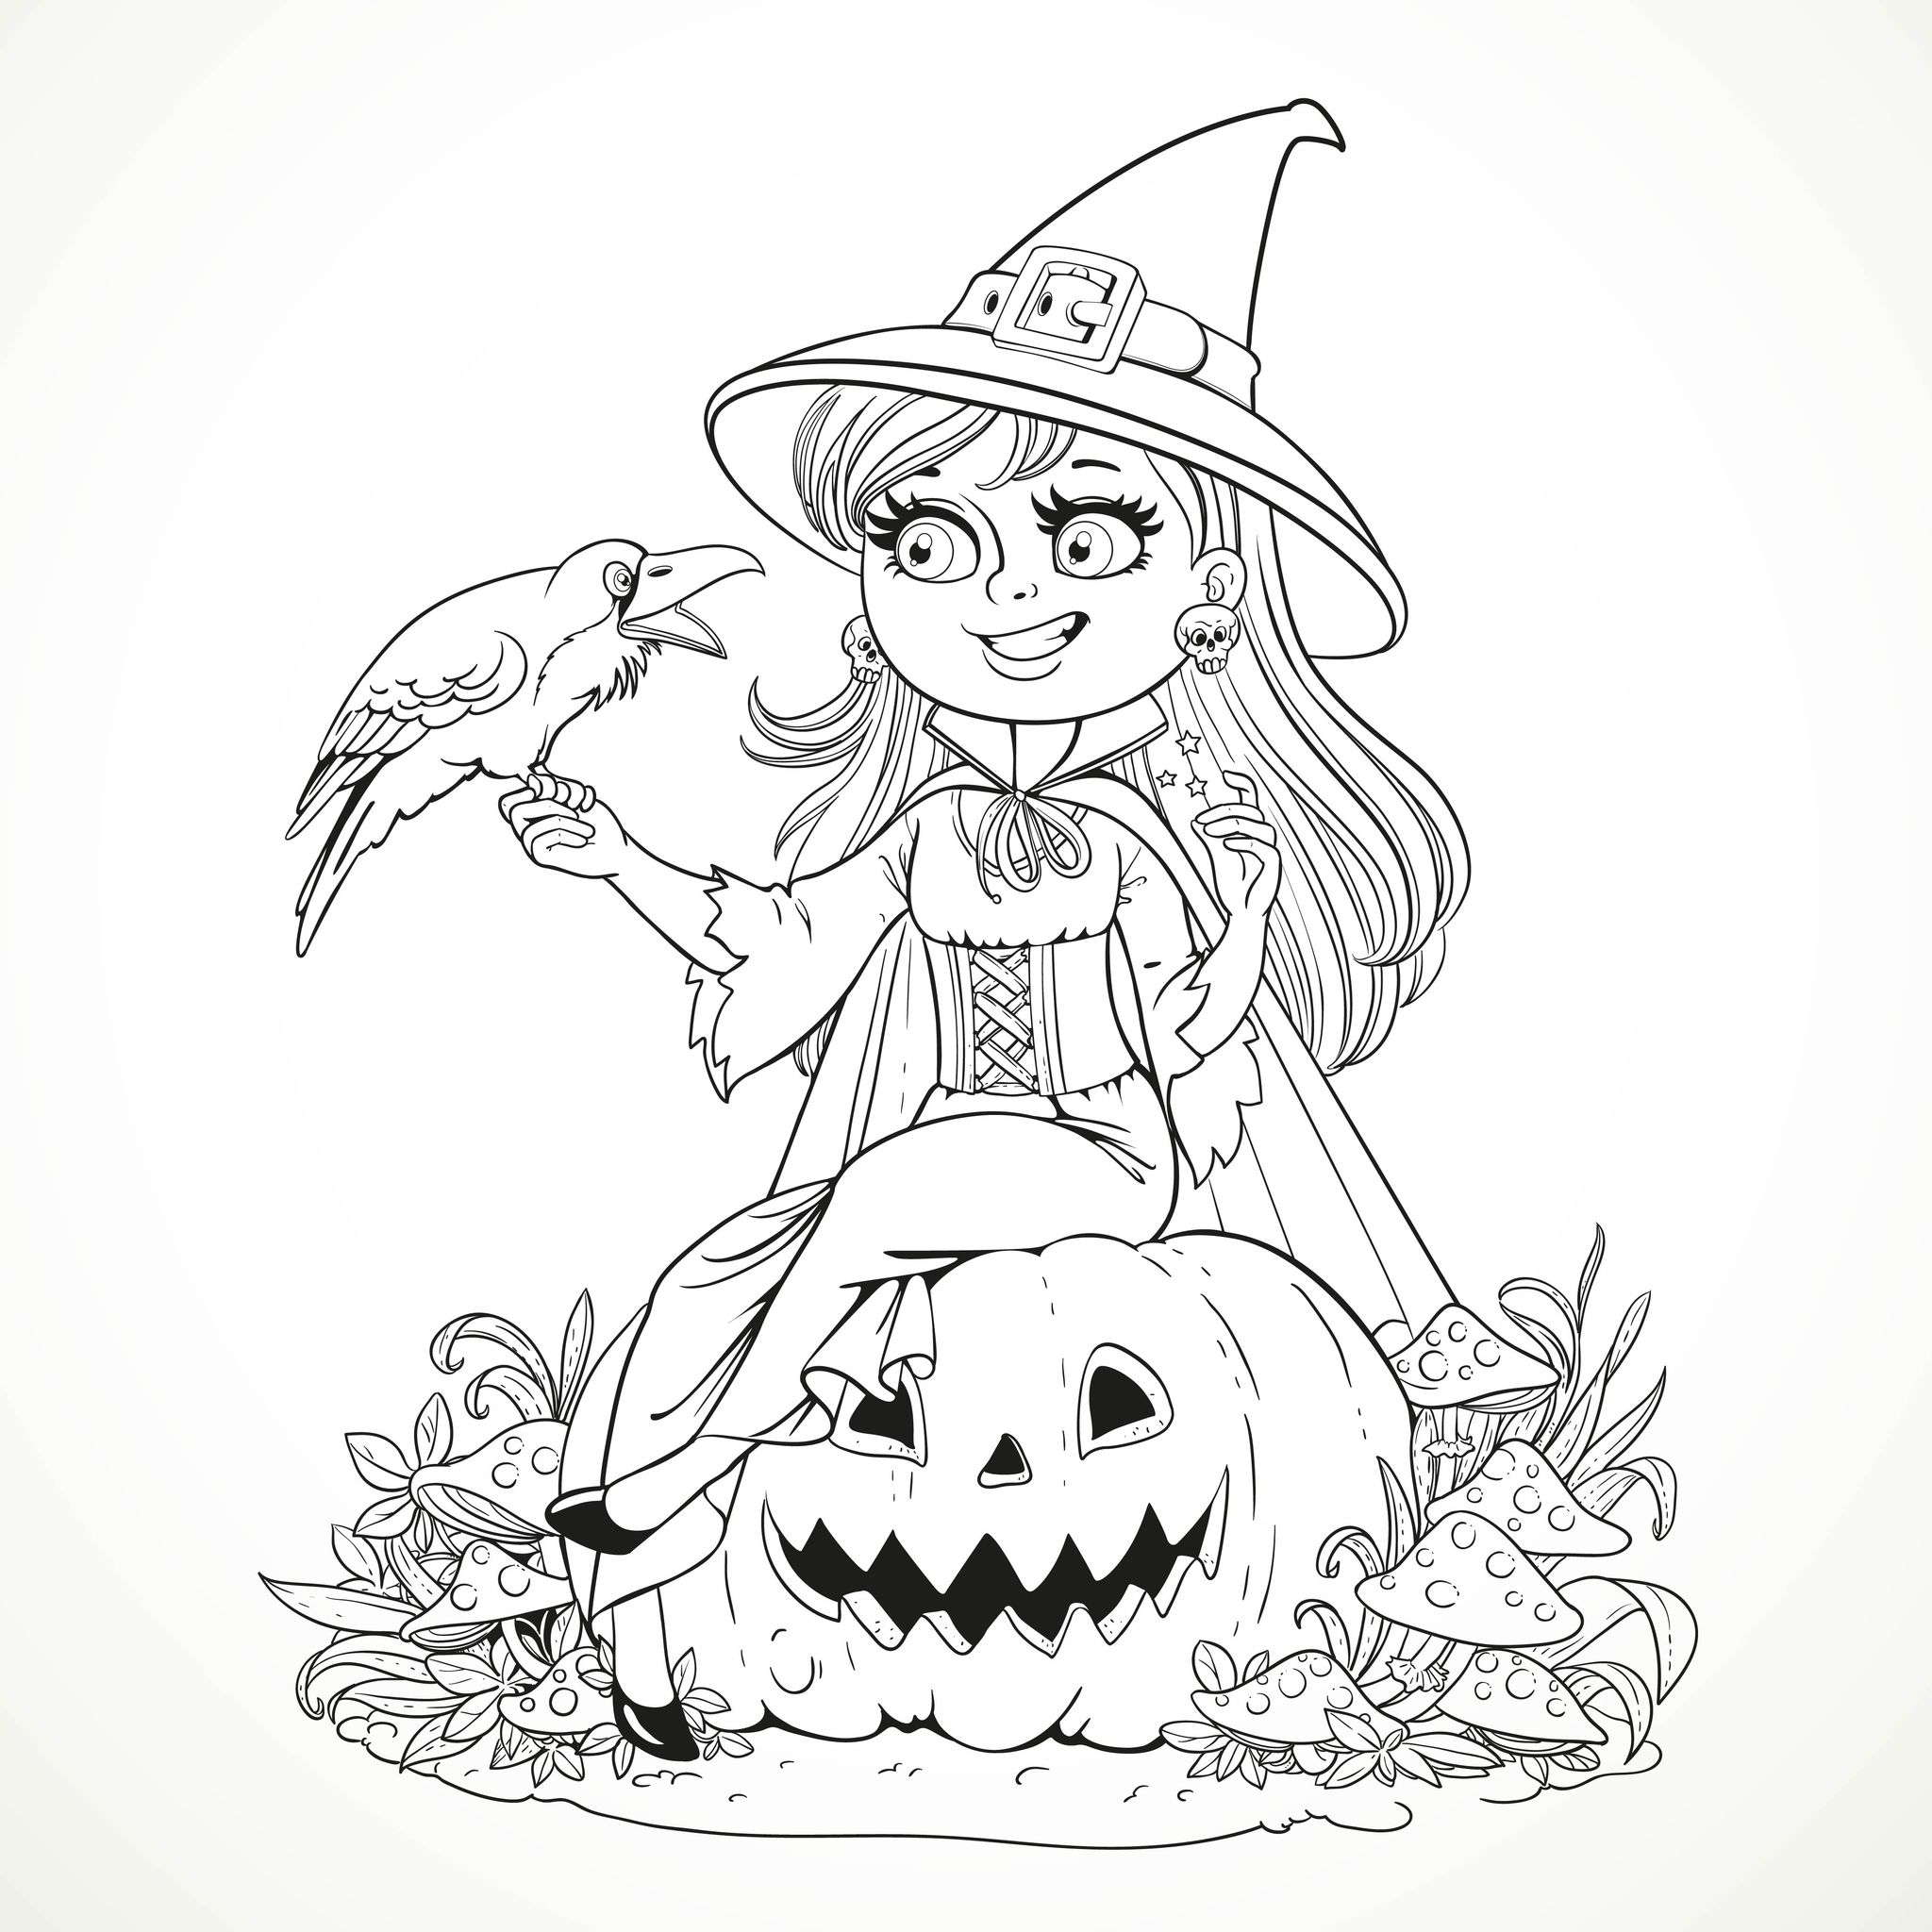 Colouring in sheets for halloween - Beautiful Witch Sitting On A Pumpkin And Talking To A Black Raven A Simple Halloween